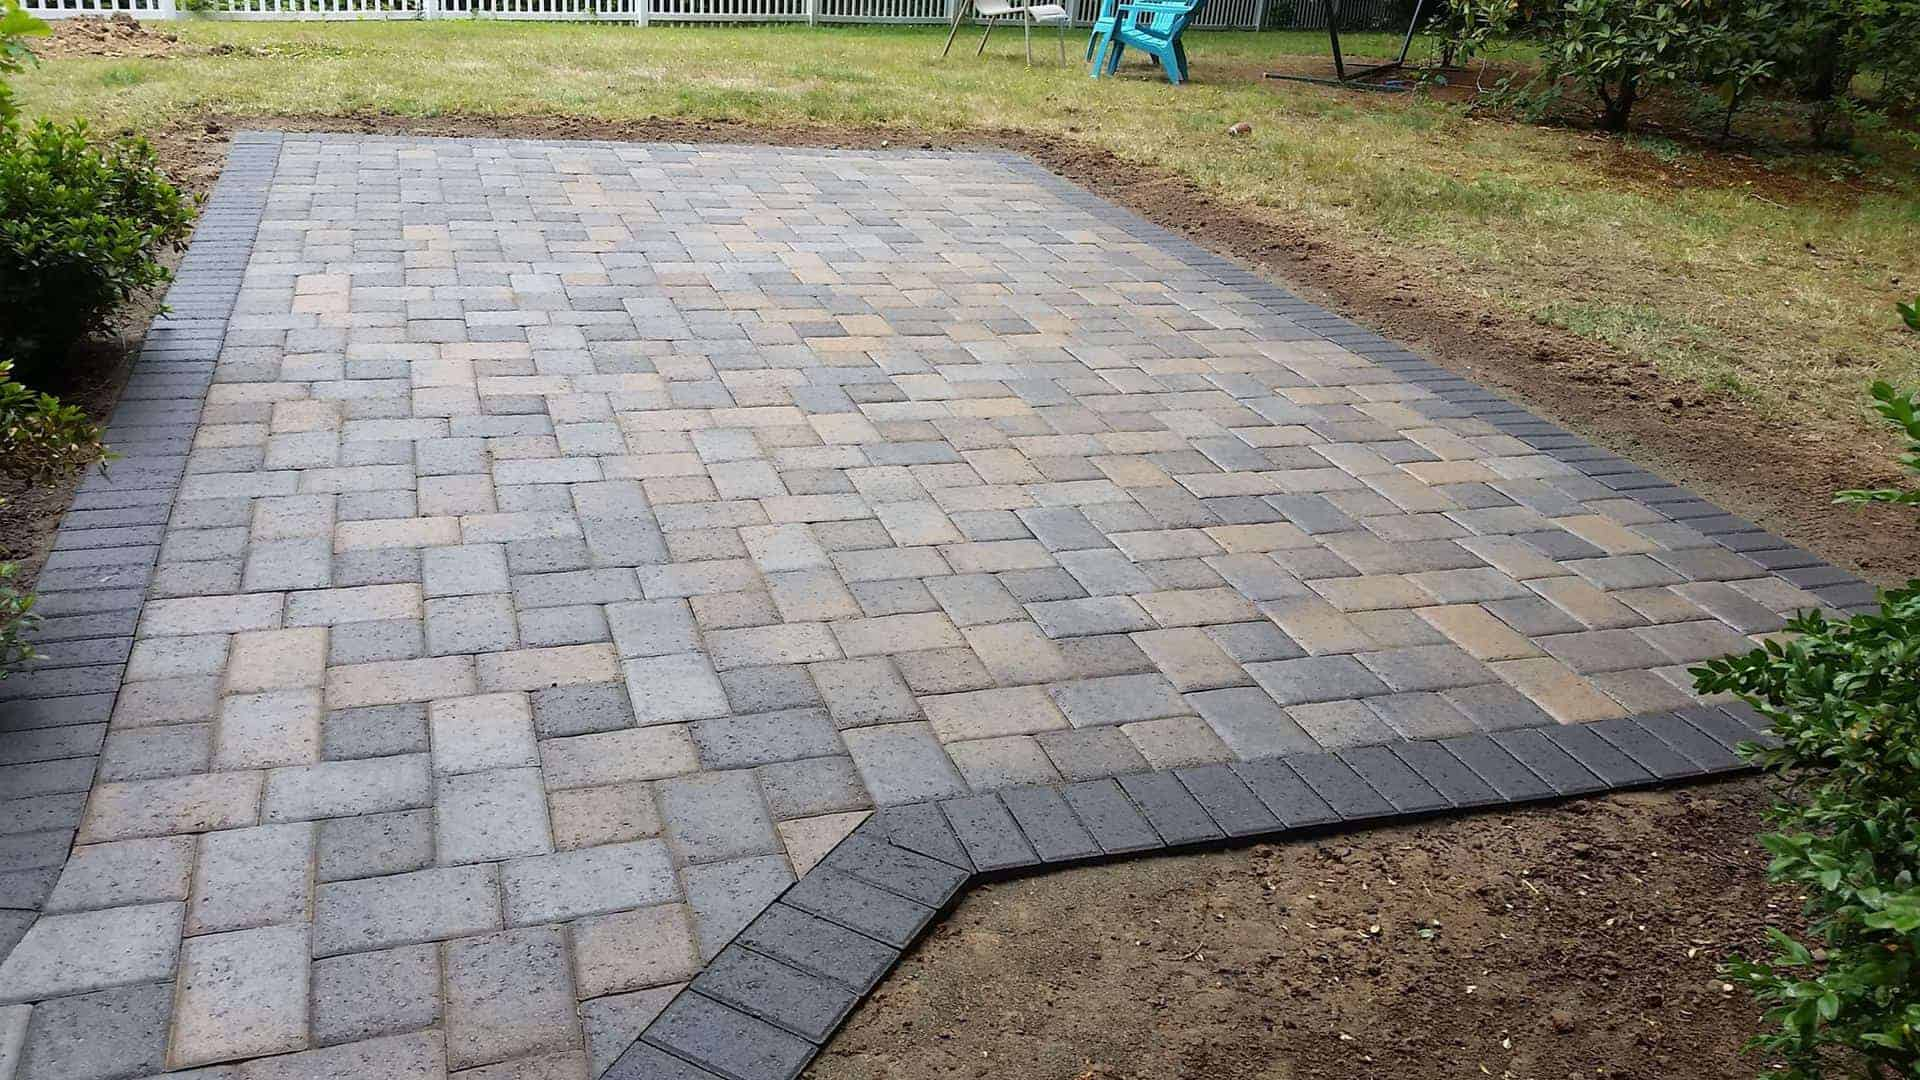 Brick tan and gray paver patio floor with dark gray trimming all around